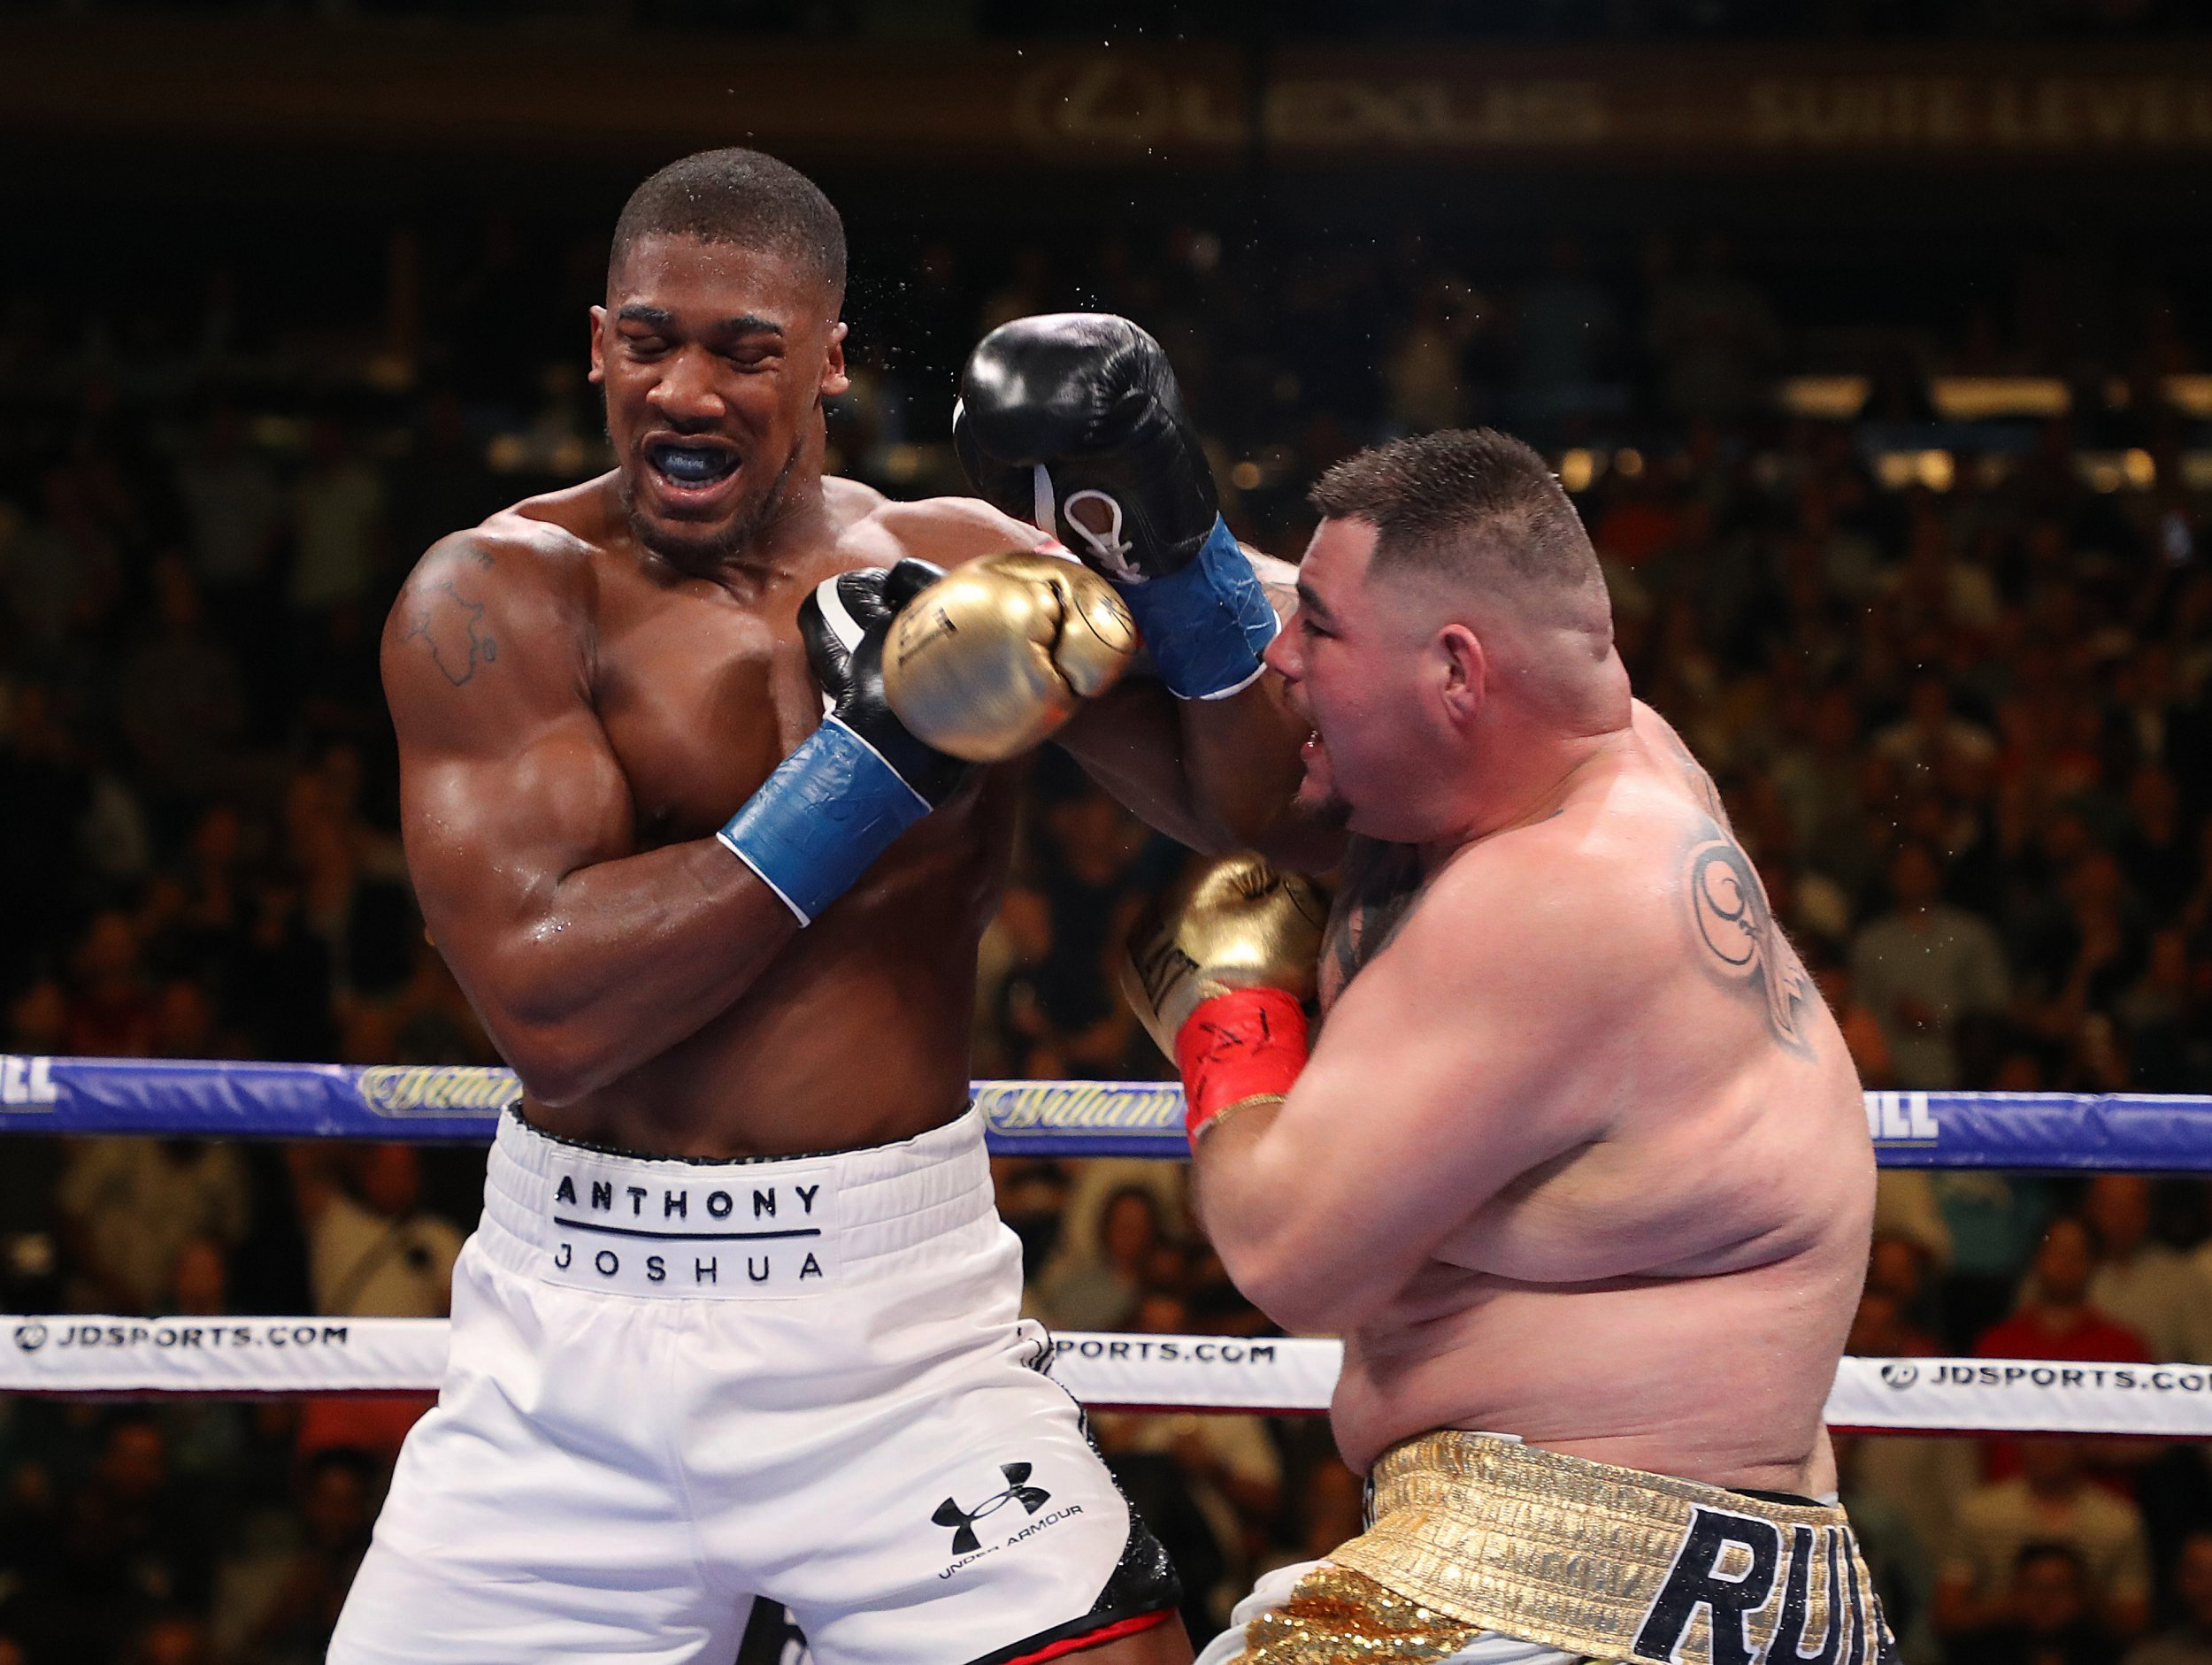 Anthony Joshua attains leaner physique ahead of his rematch with Andy Ruiz Jr